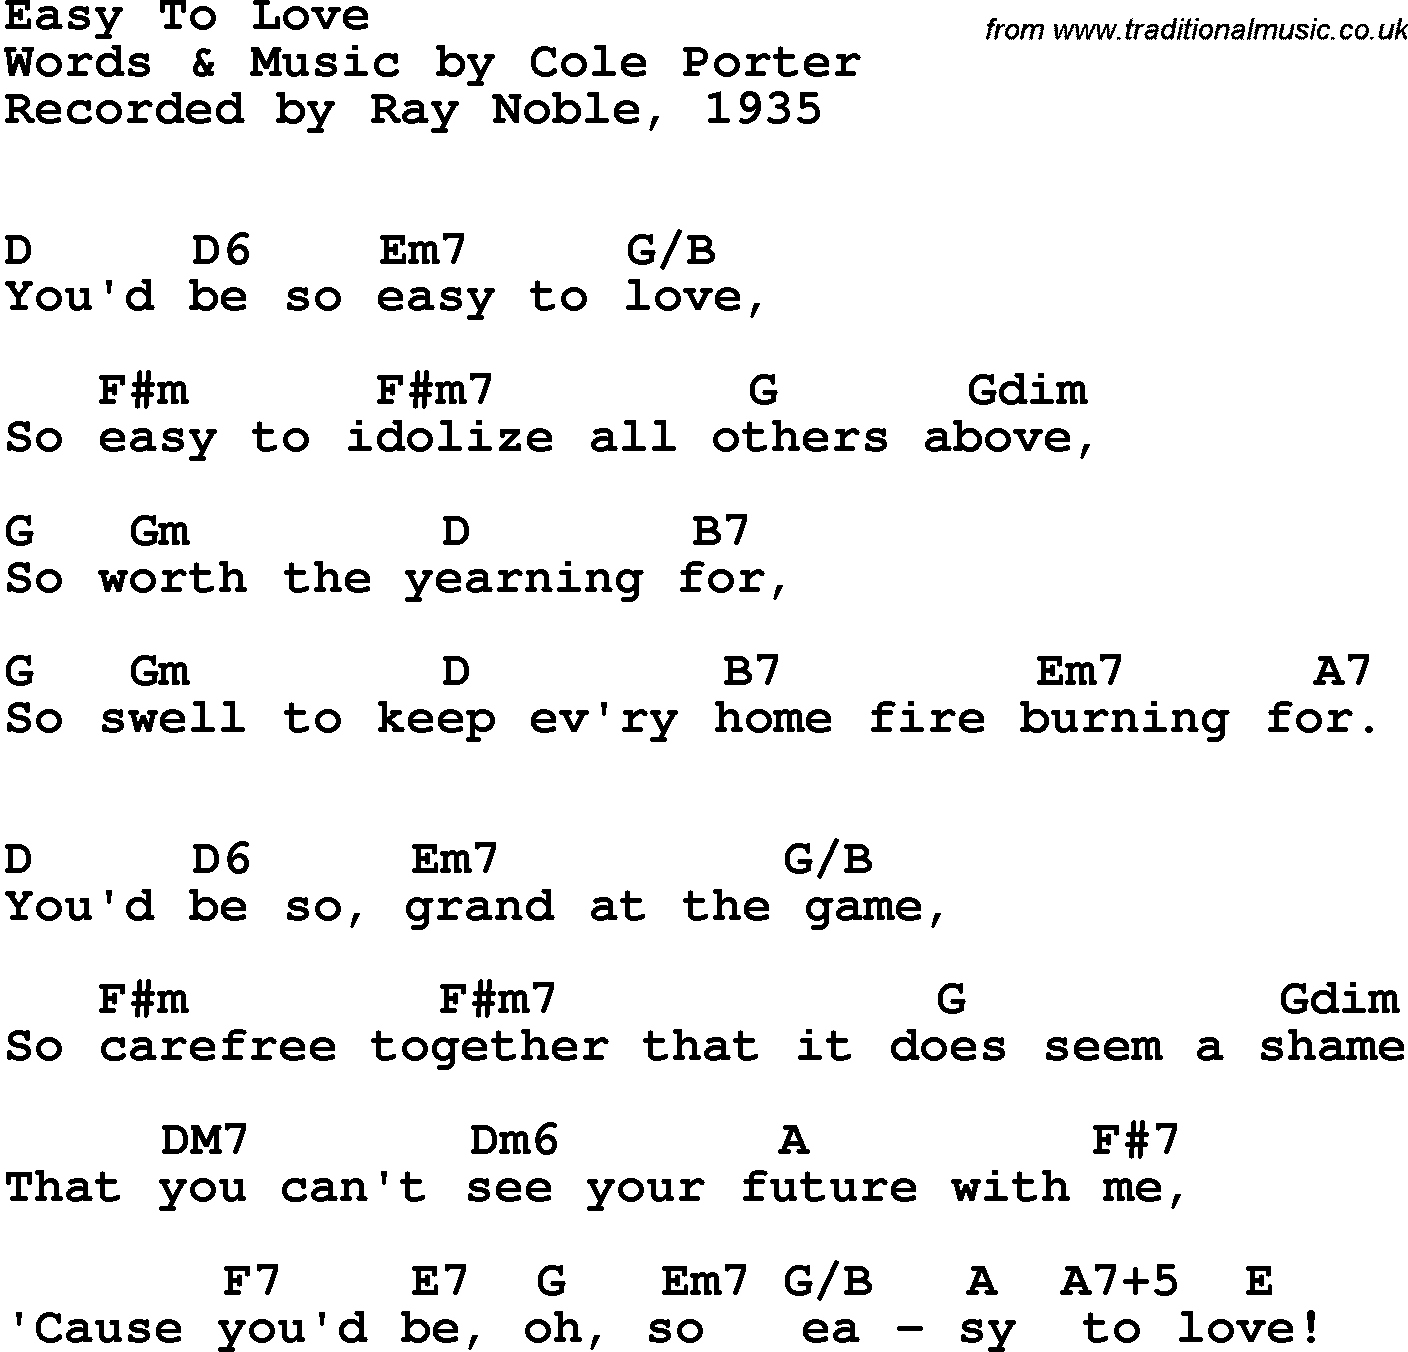 Song Lyrics With Guitar Chords For Easy To Love Ray Noble 1935